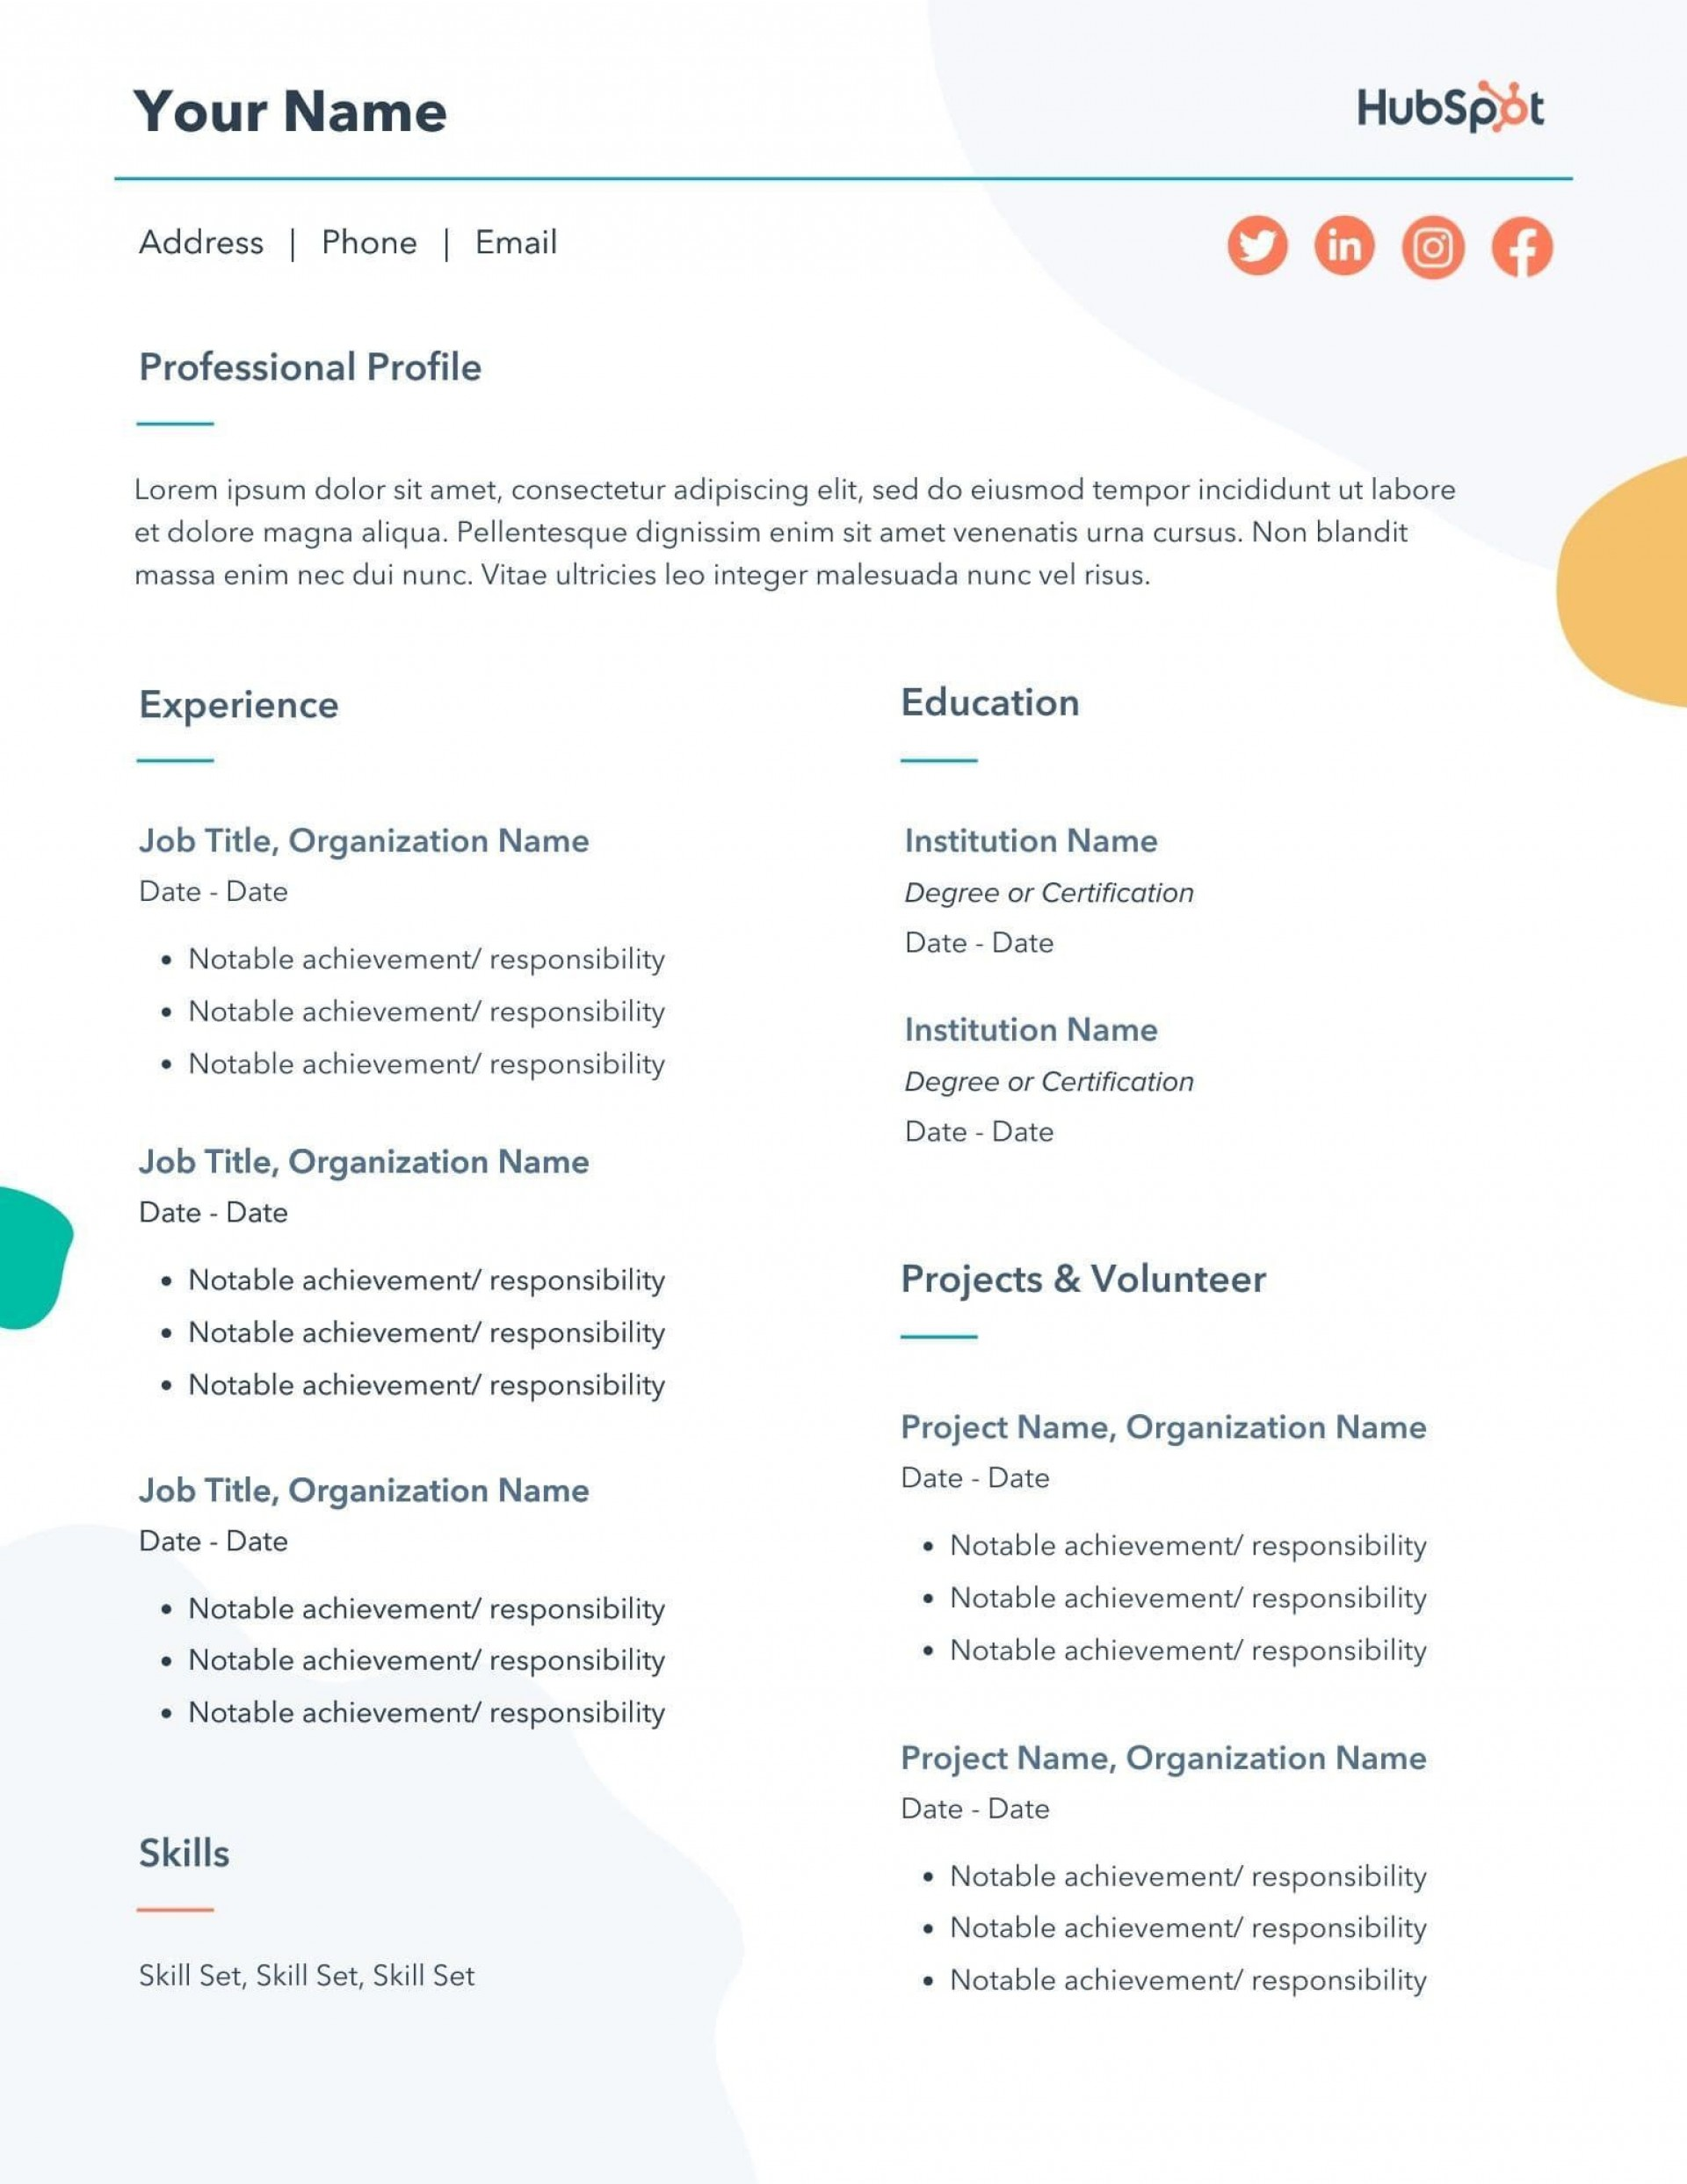 009 Outstanding Download Resume Template Free Microsoft Word Image  2010 Attractive M Simple For1920